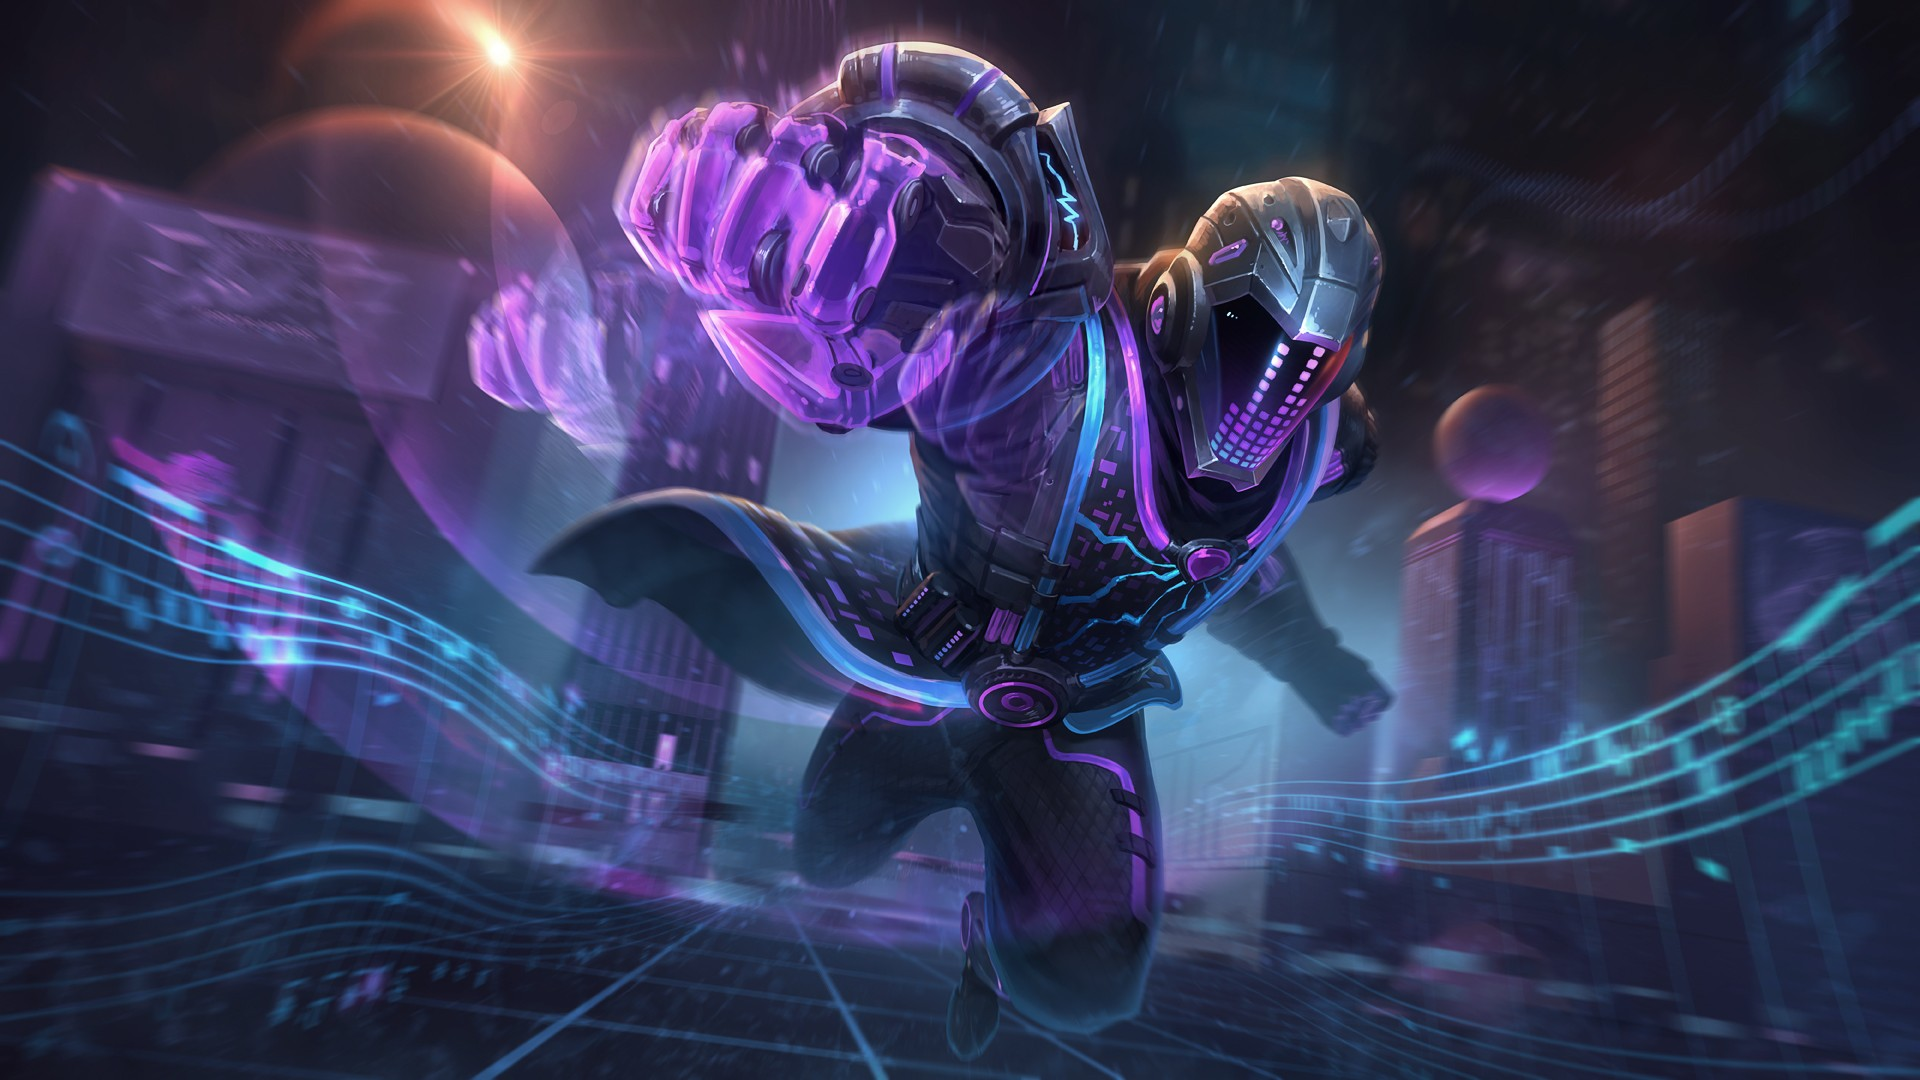 Black 3d Ipad Wallpaper Ravana Smite God Wallpapers Hd Wallpapers Id 24243